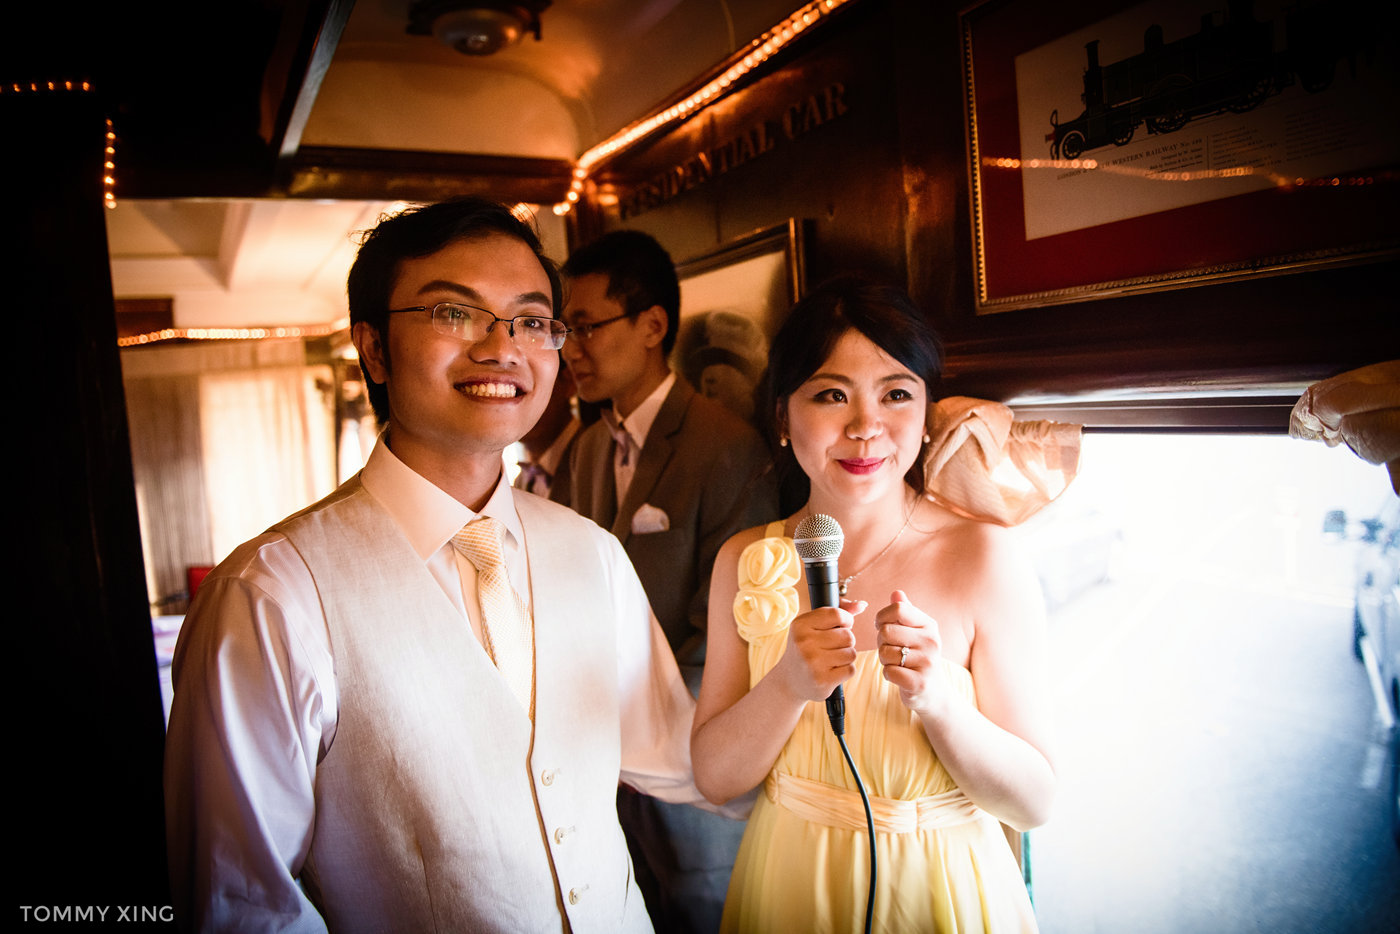 Seattle Wedding and pre wedding Los Angeles Tommy Xing Photography 西雅图洛杉矶旧金山婚礼婚纱照摄影师 177.jpg